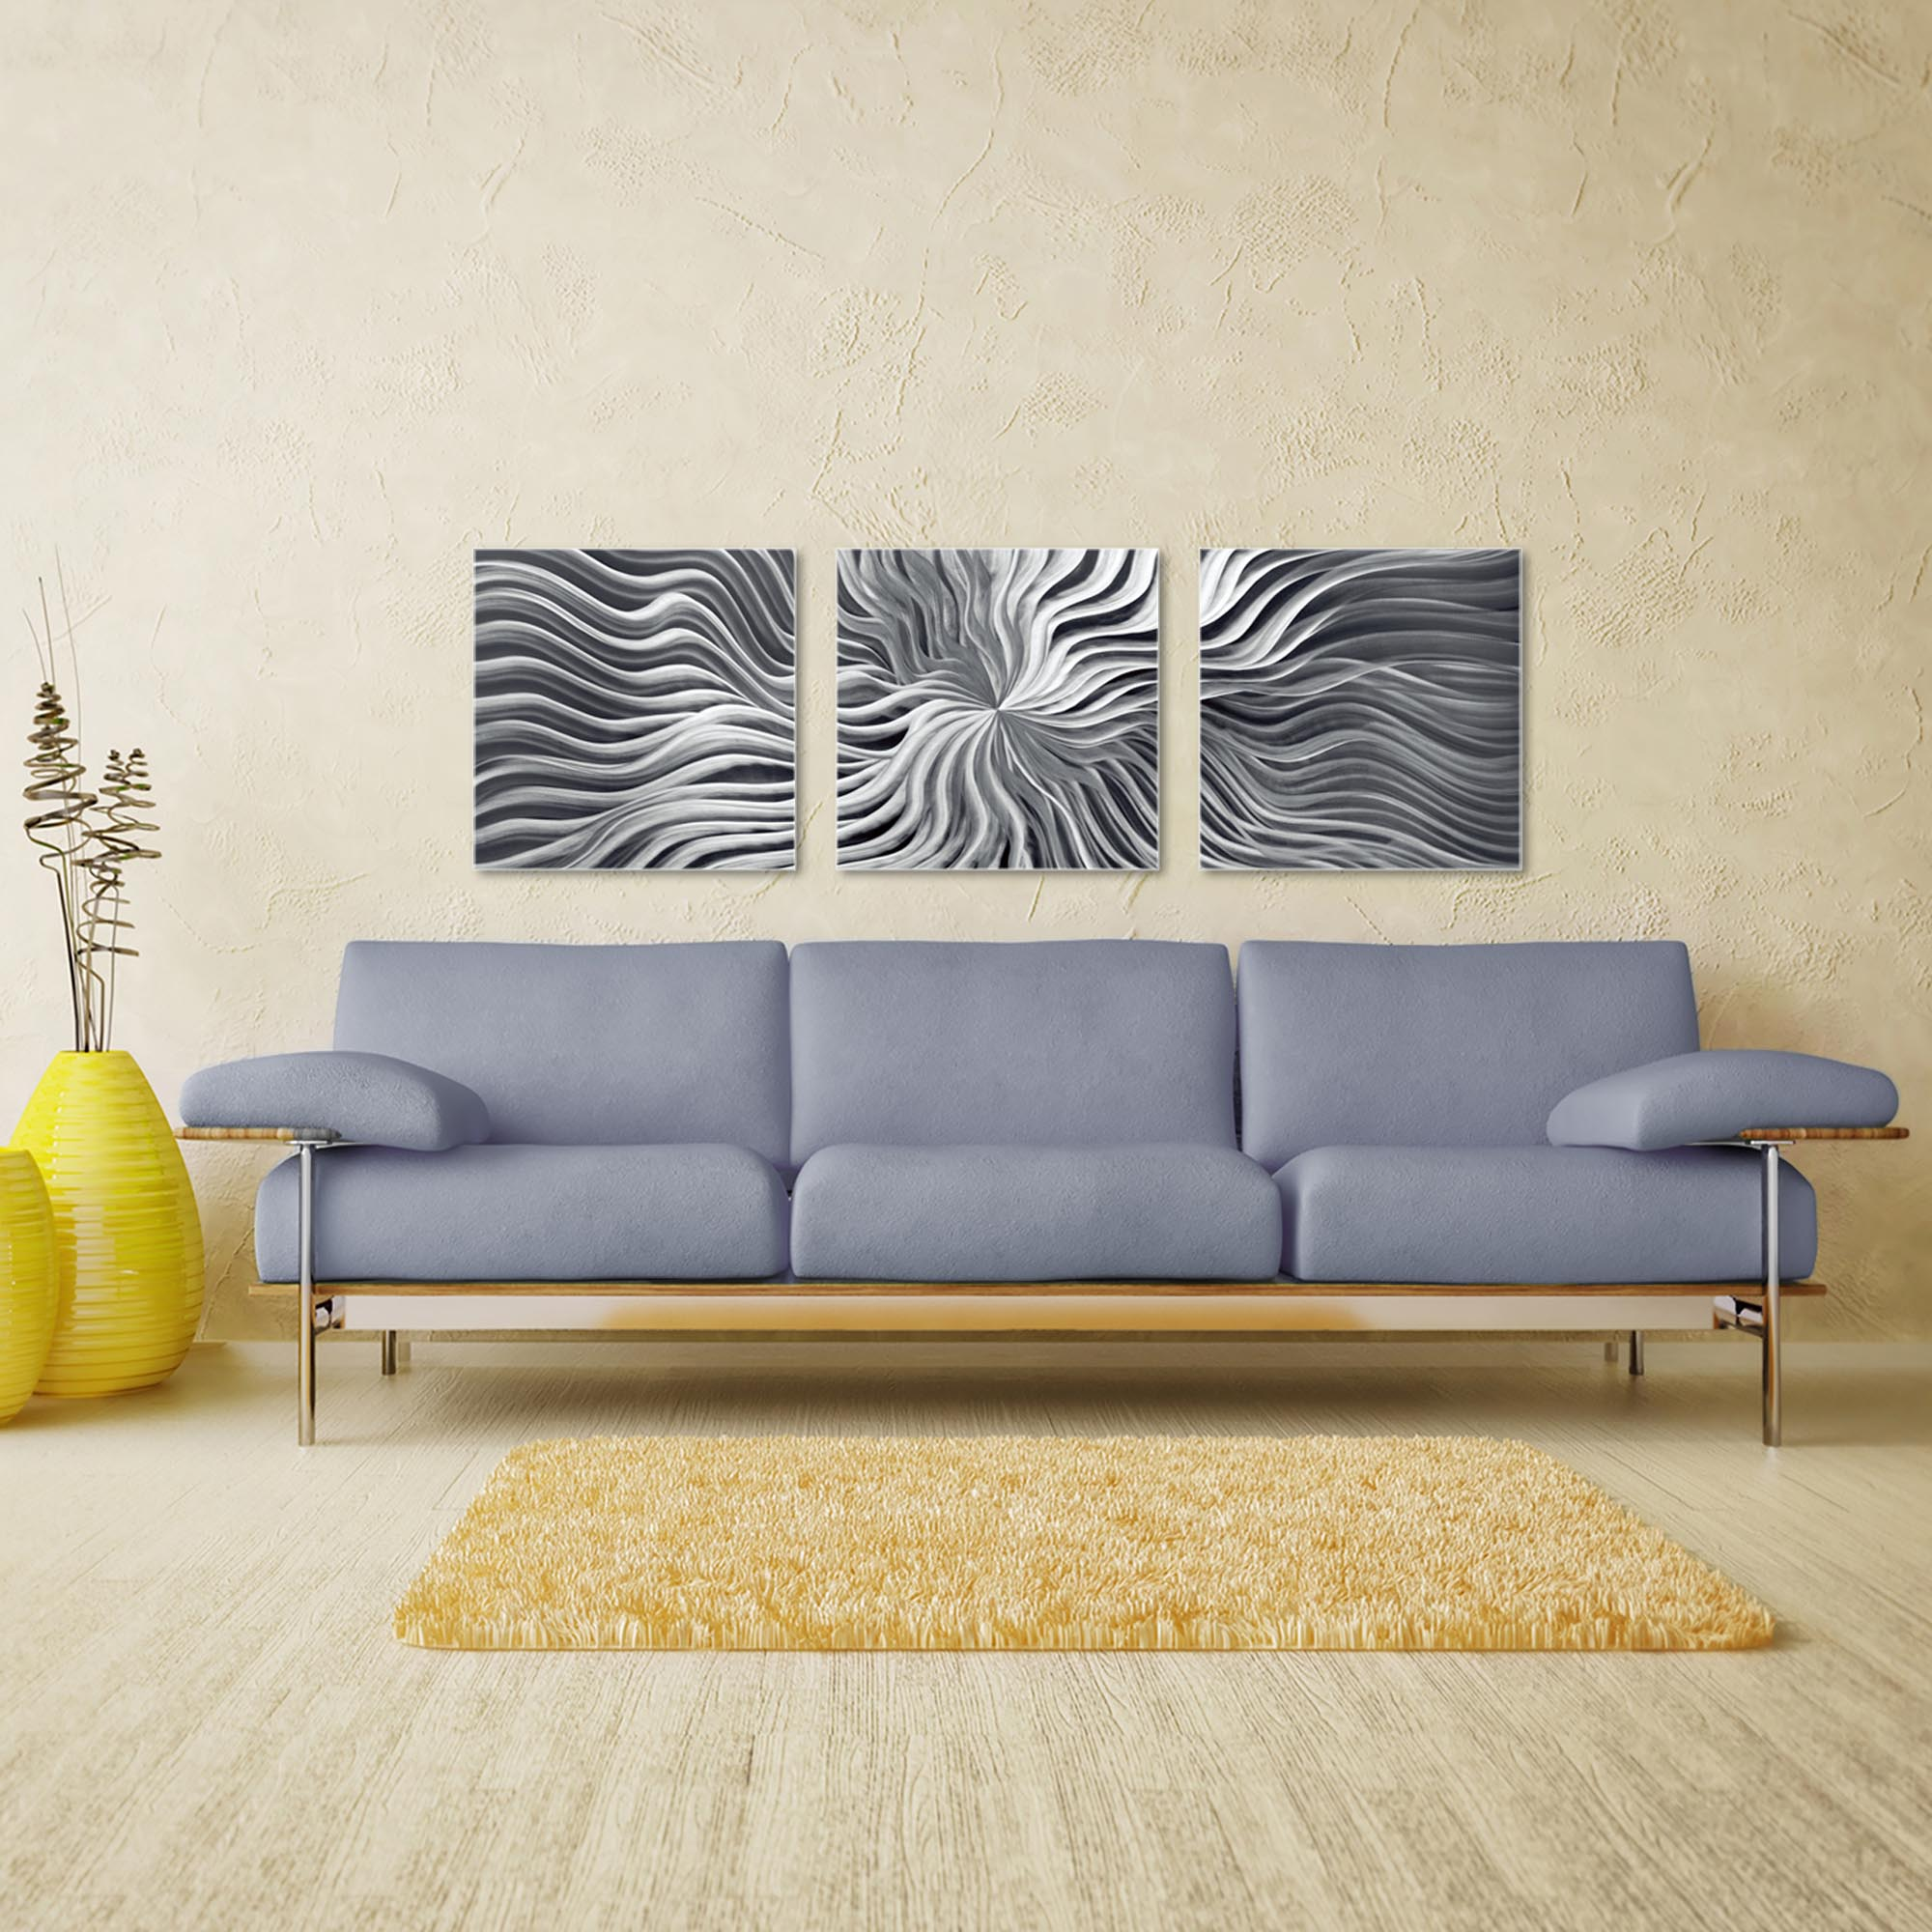 Flexure Triptych Large 70x22in. Metal or Acrylic Contemporary Decor - Image 3